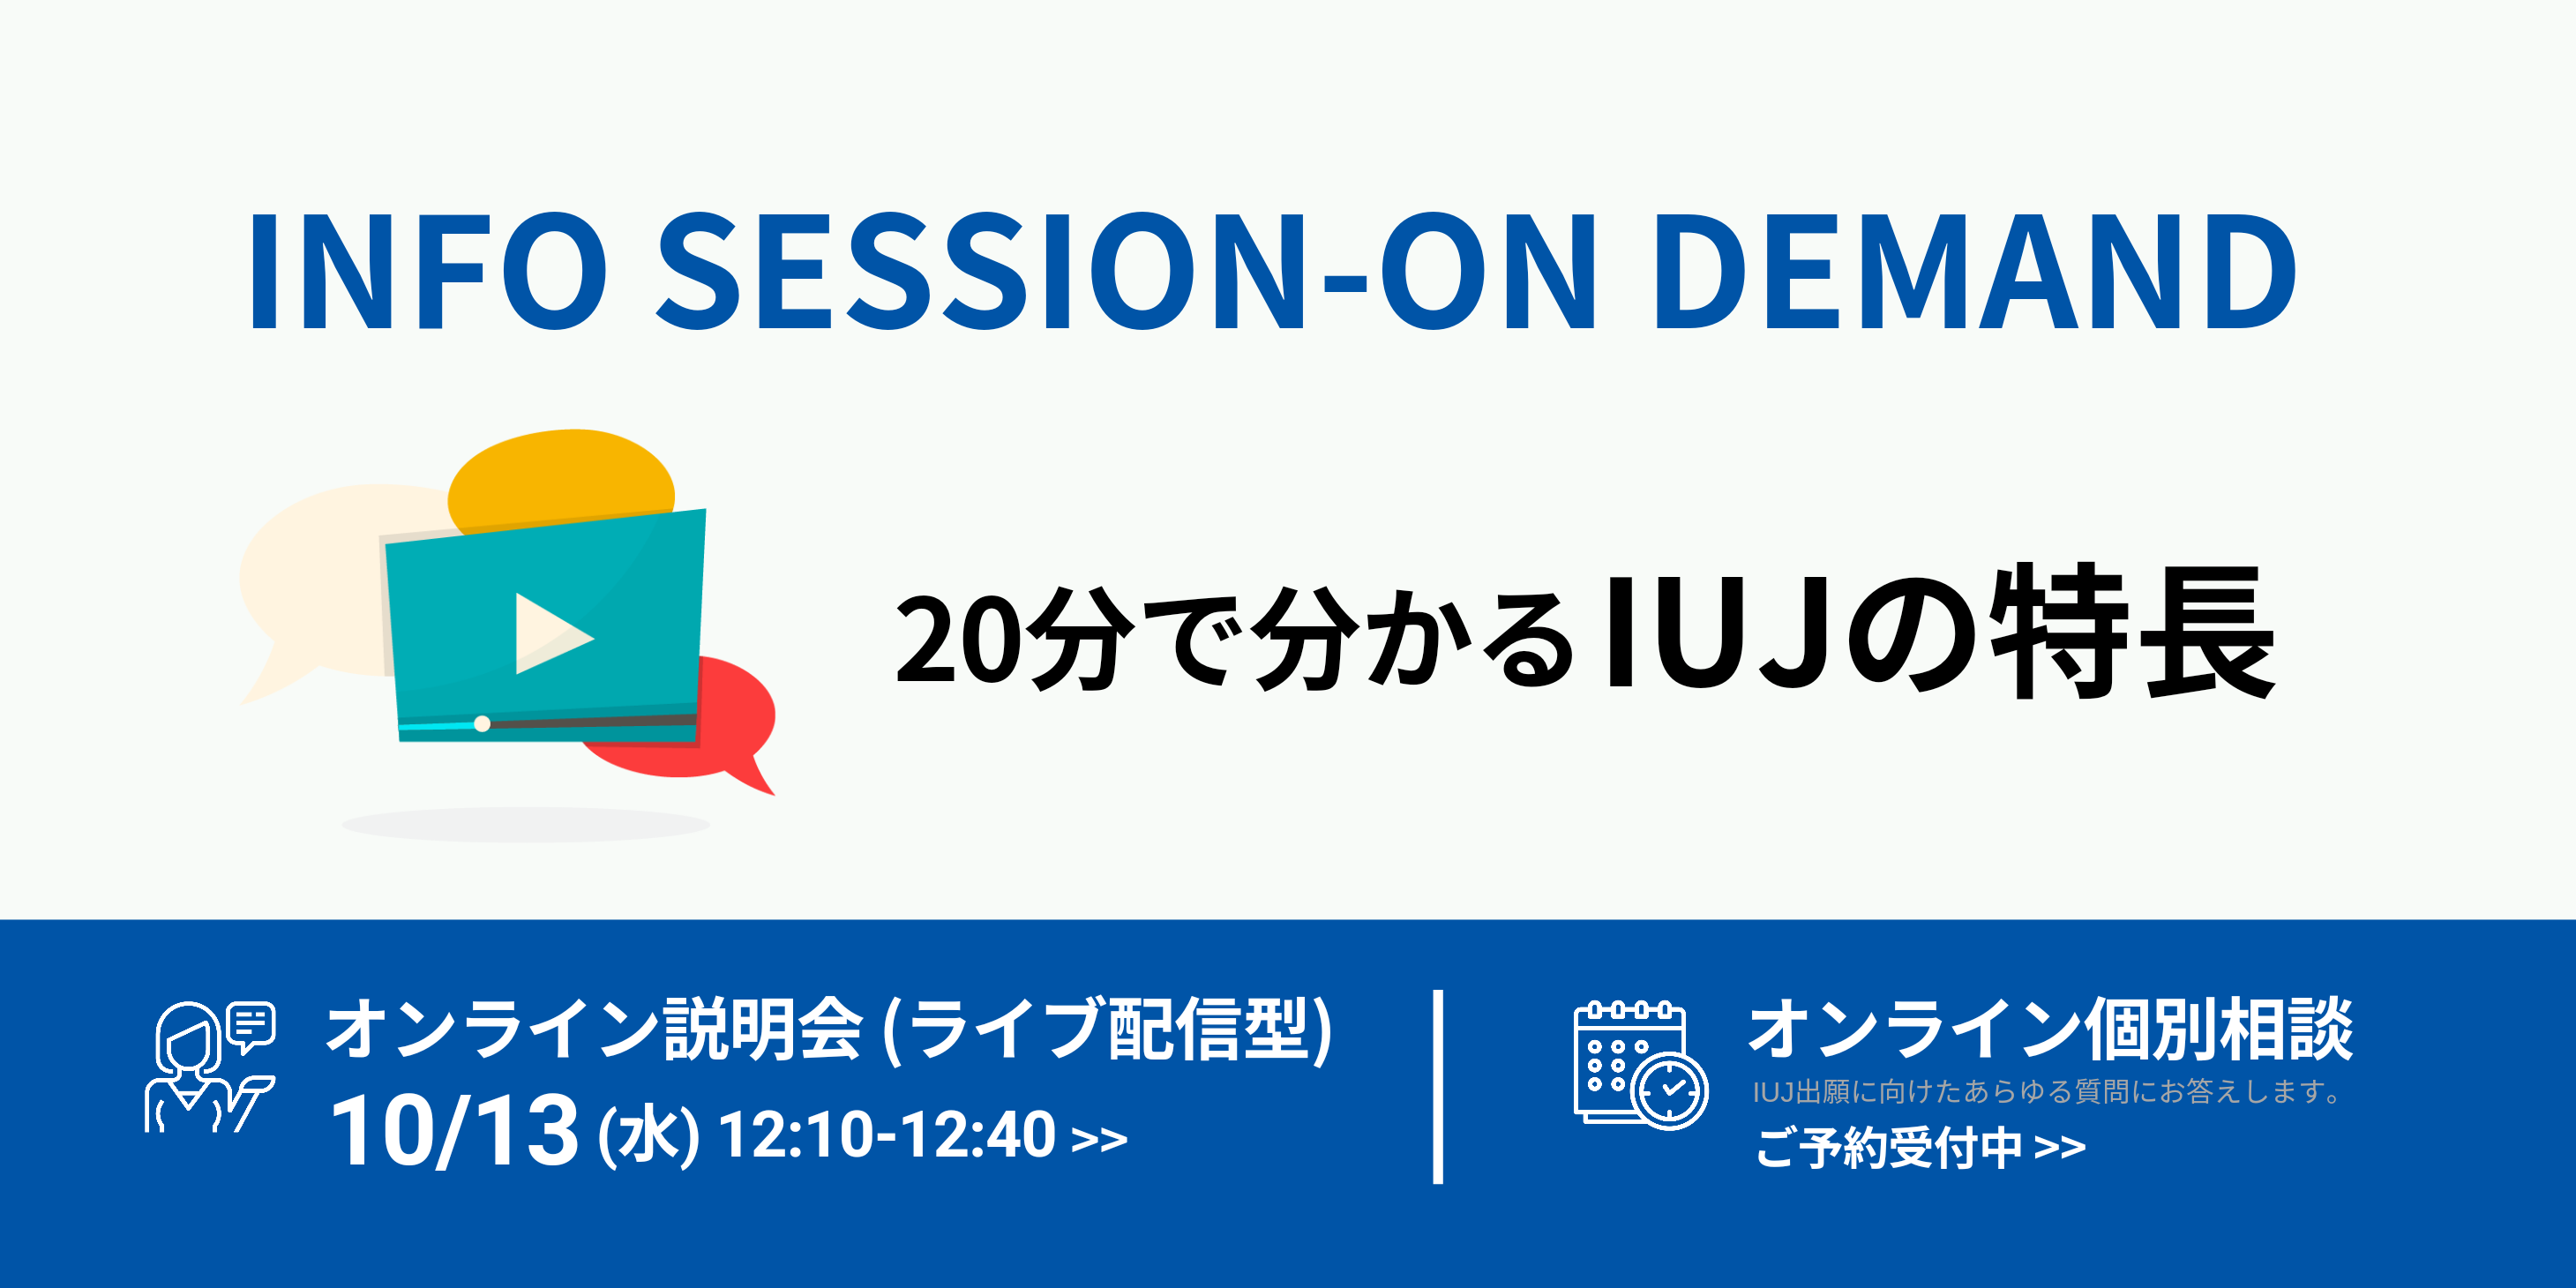 Info Session On Demand